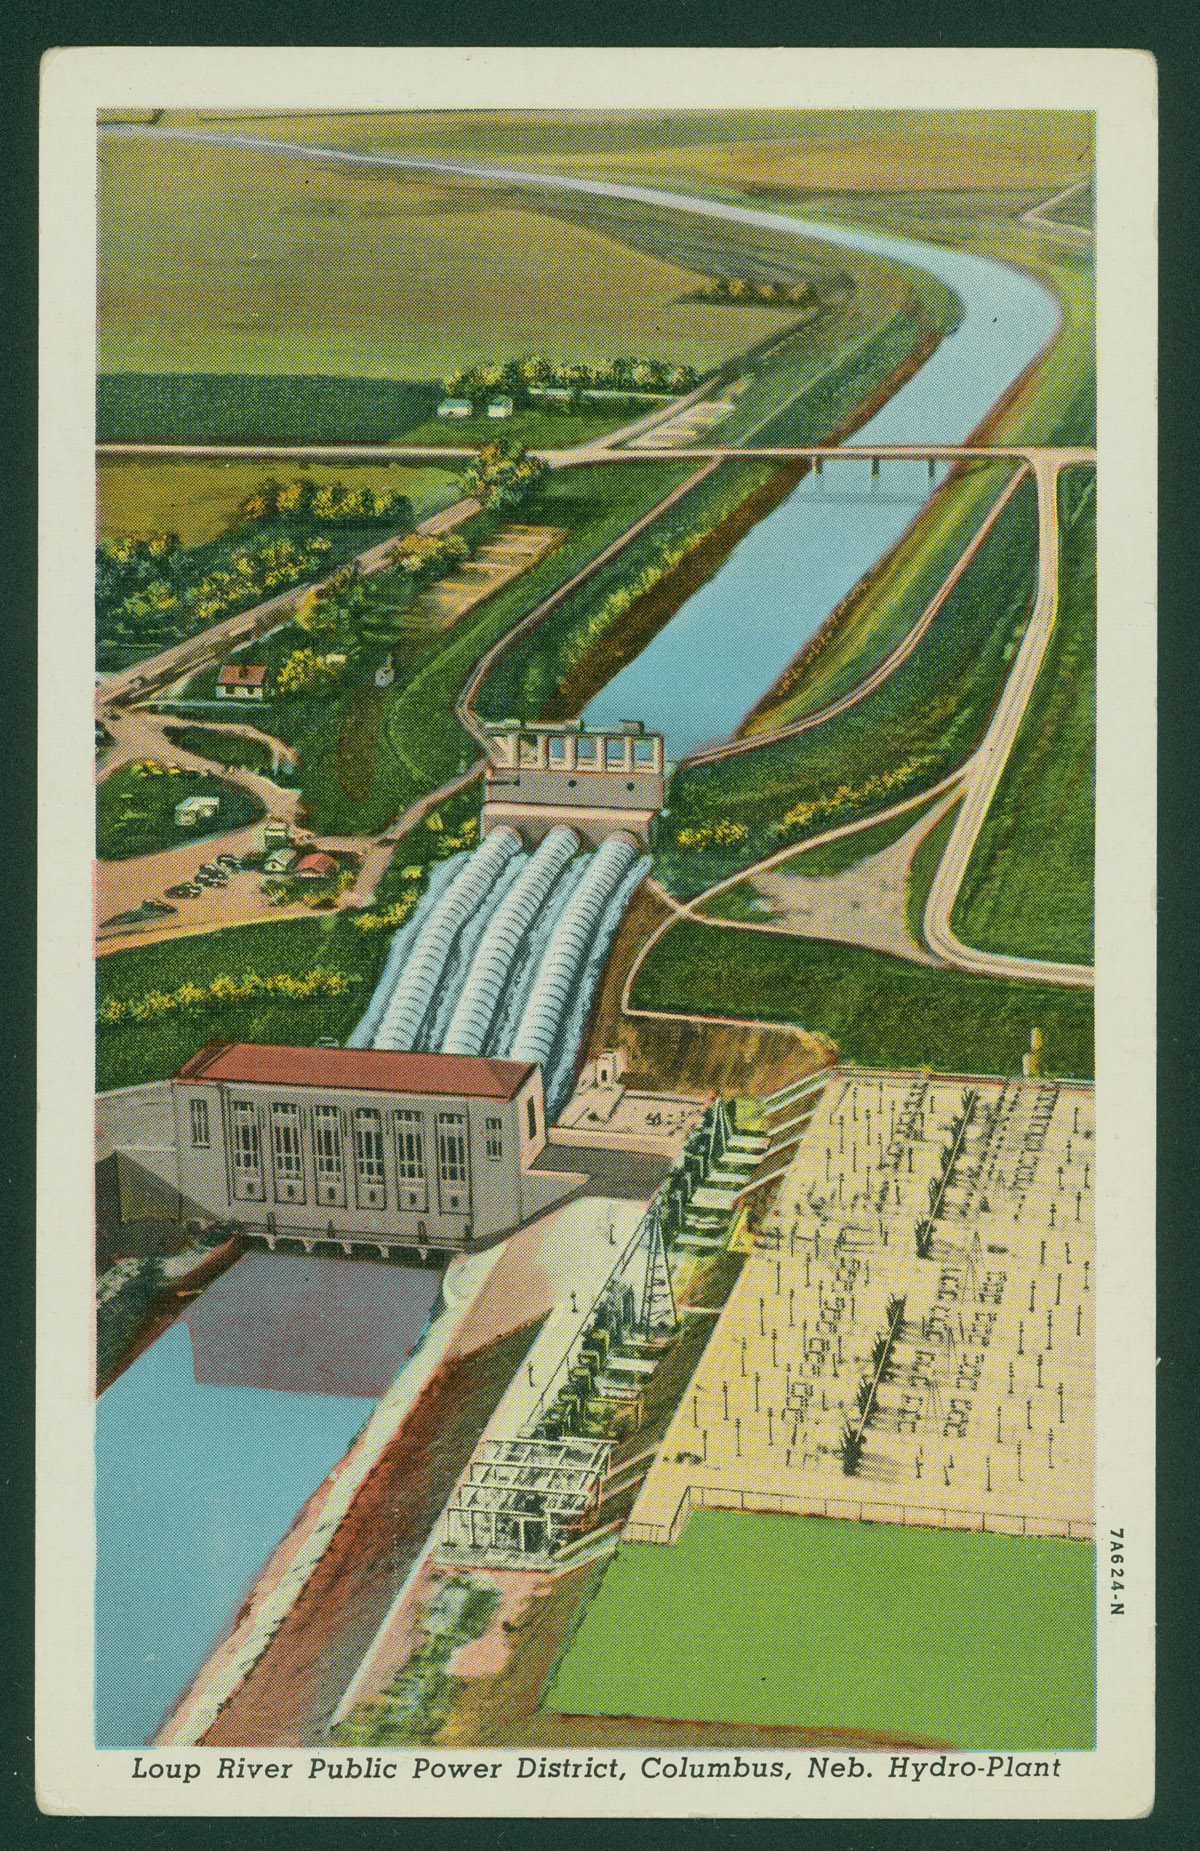 Lithographic postcard showing Loup River Public Power District, Columbus, Nebraska, Hydro-plant.